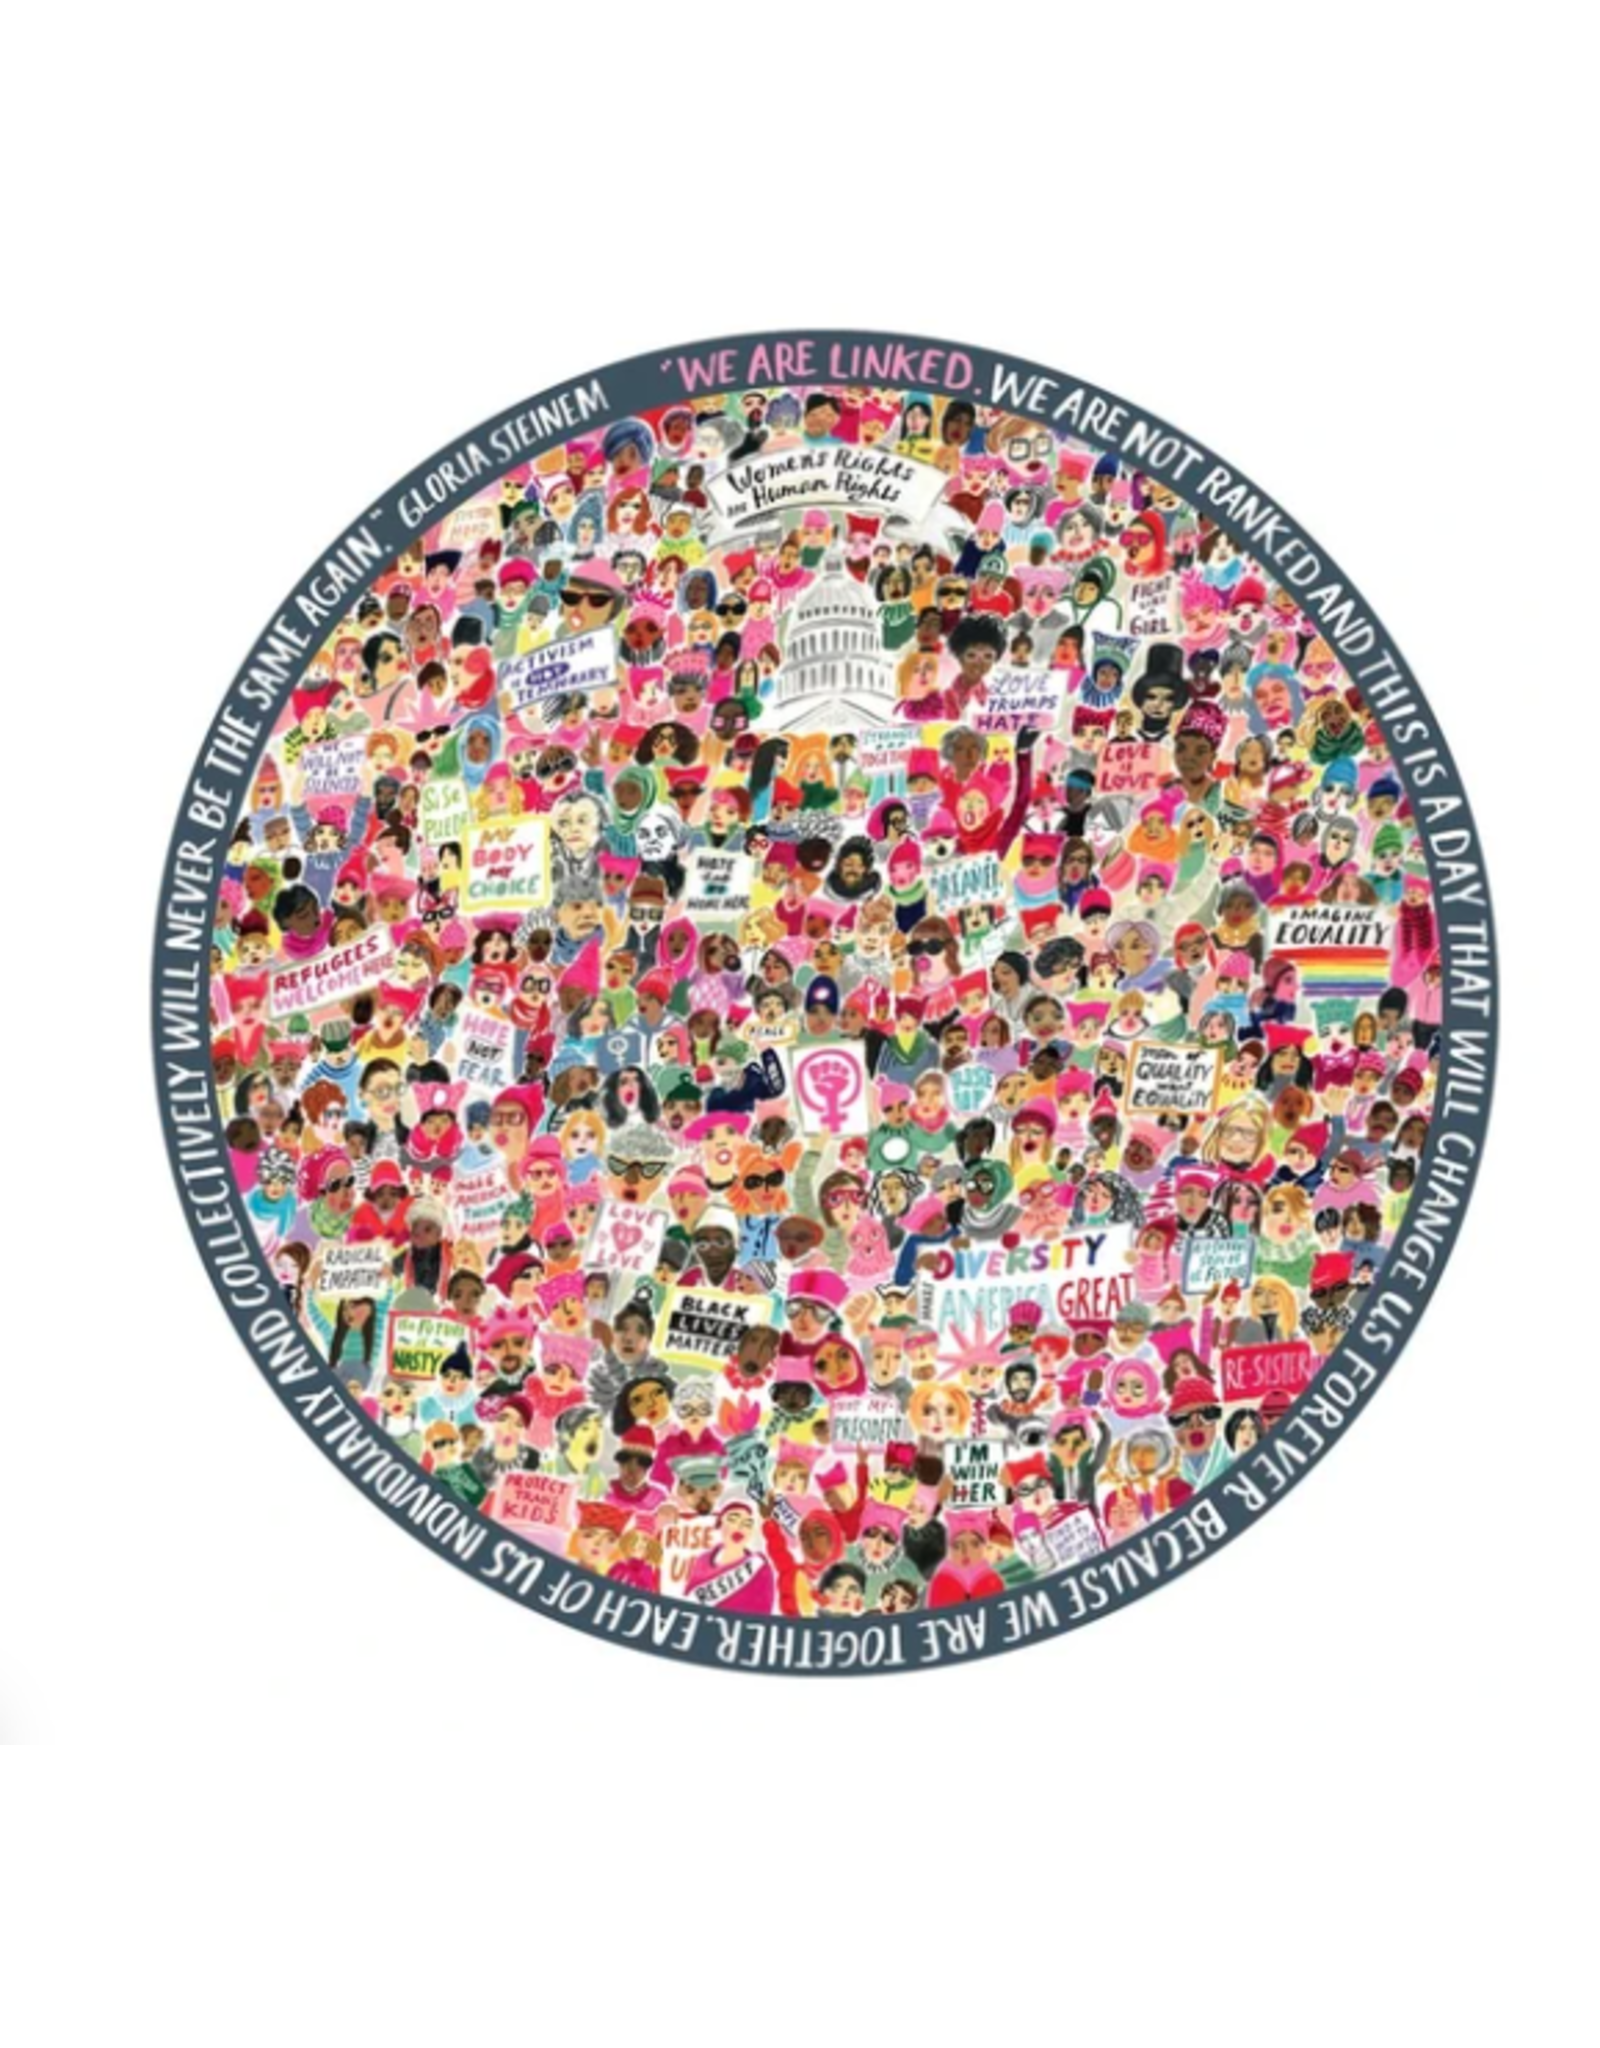 Women's March Puzzle, 500 Pieces, ROUND